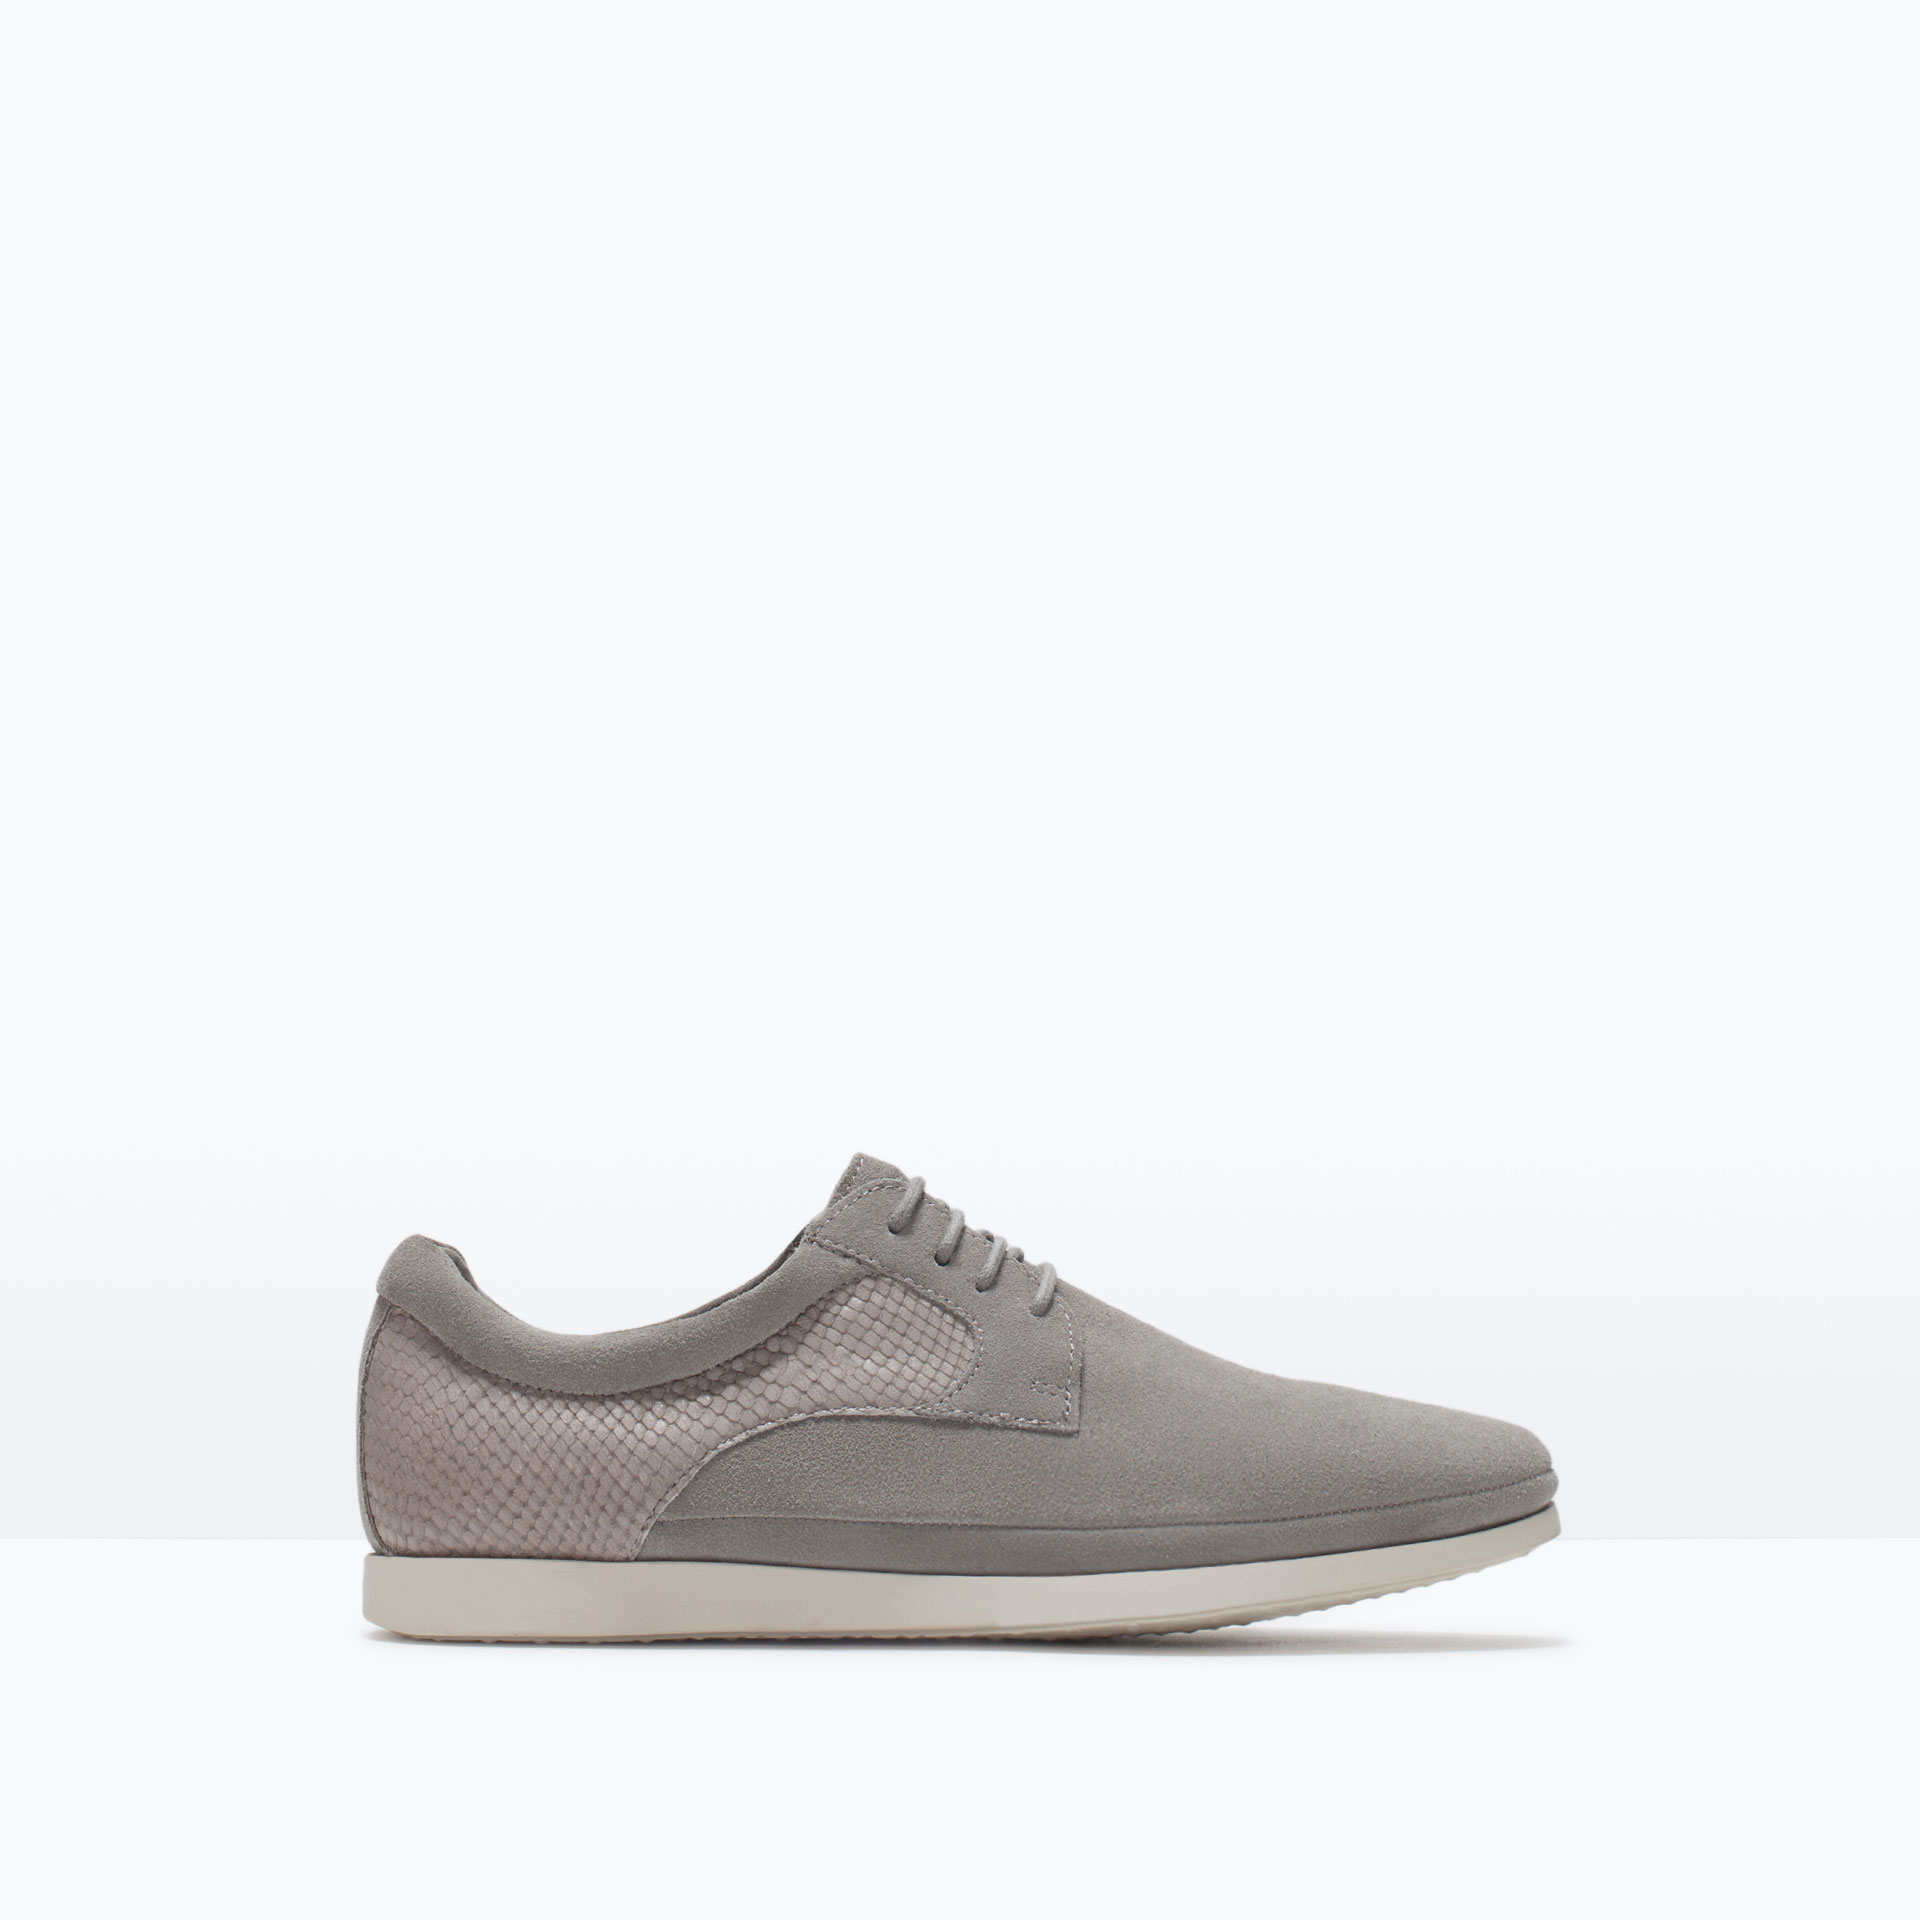 zara leather shoes with snakeskin effect embossed detail